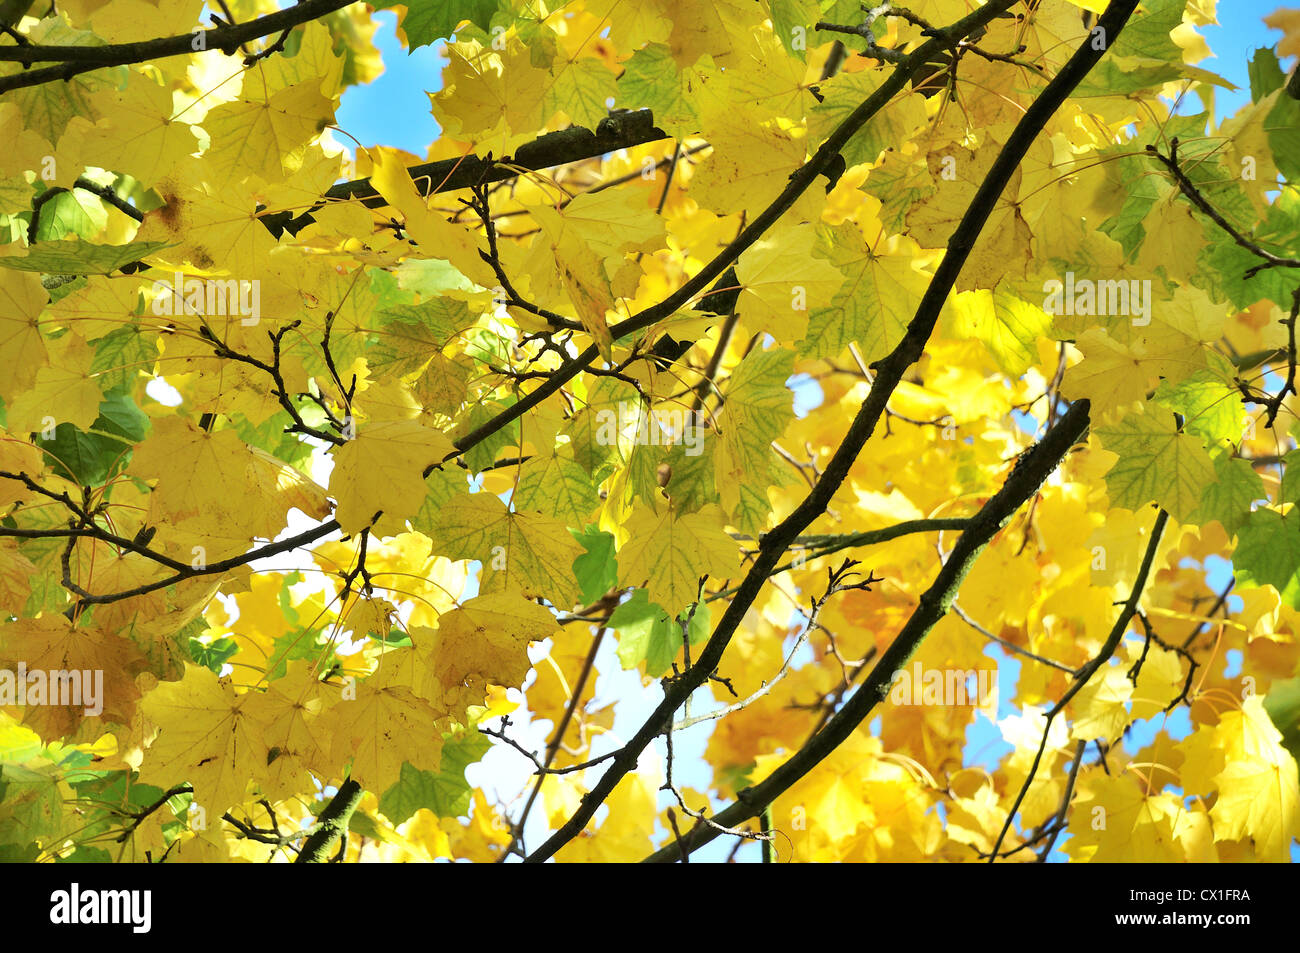 Branches of Autumn leaves against a blue sky - Stock Image